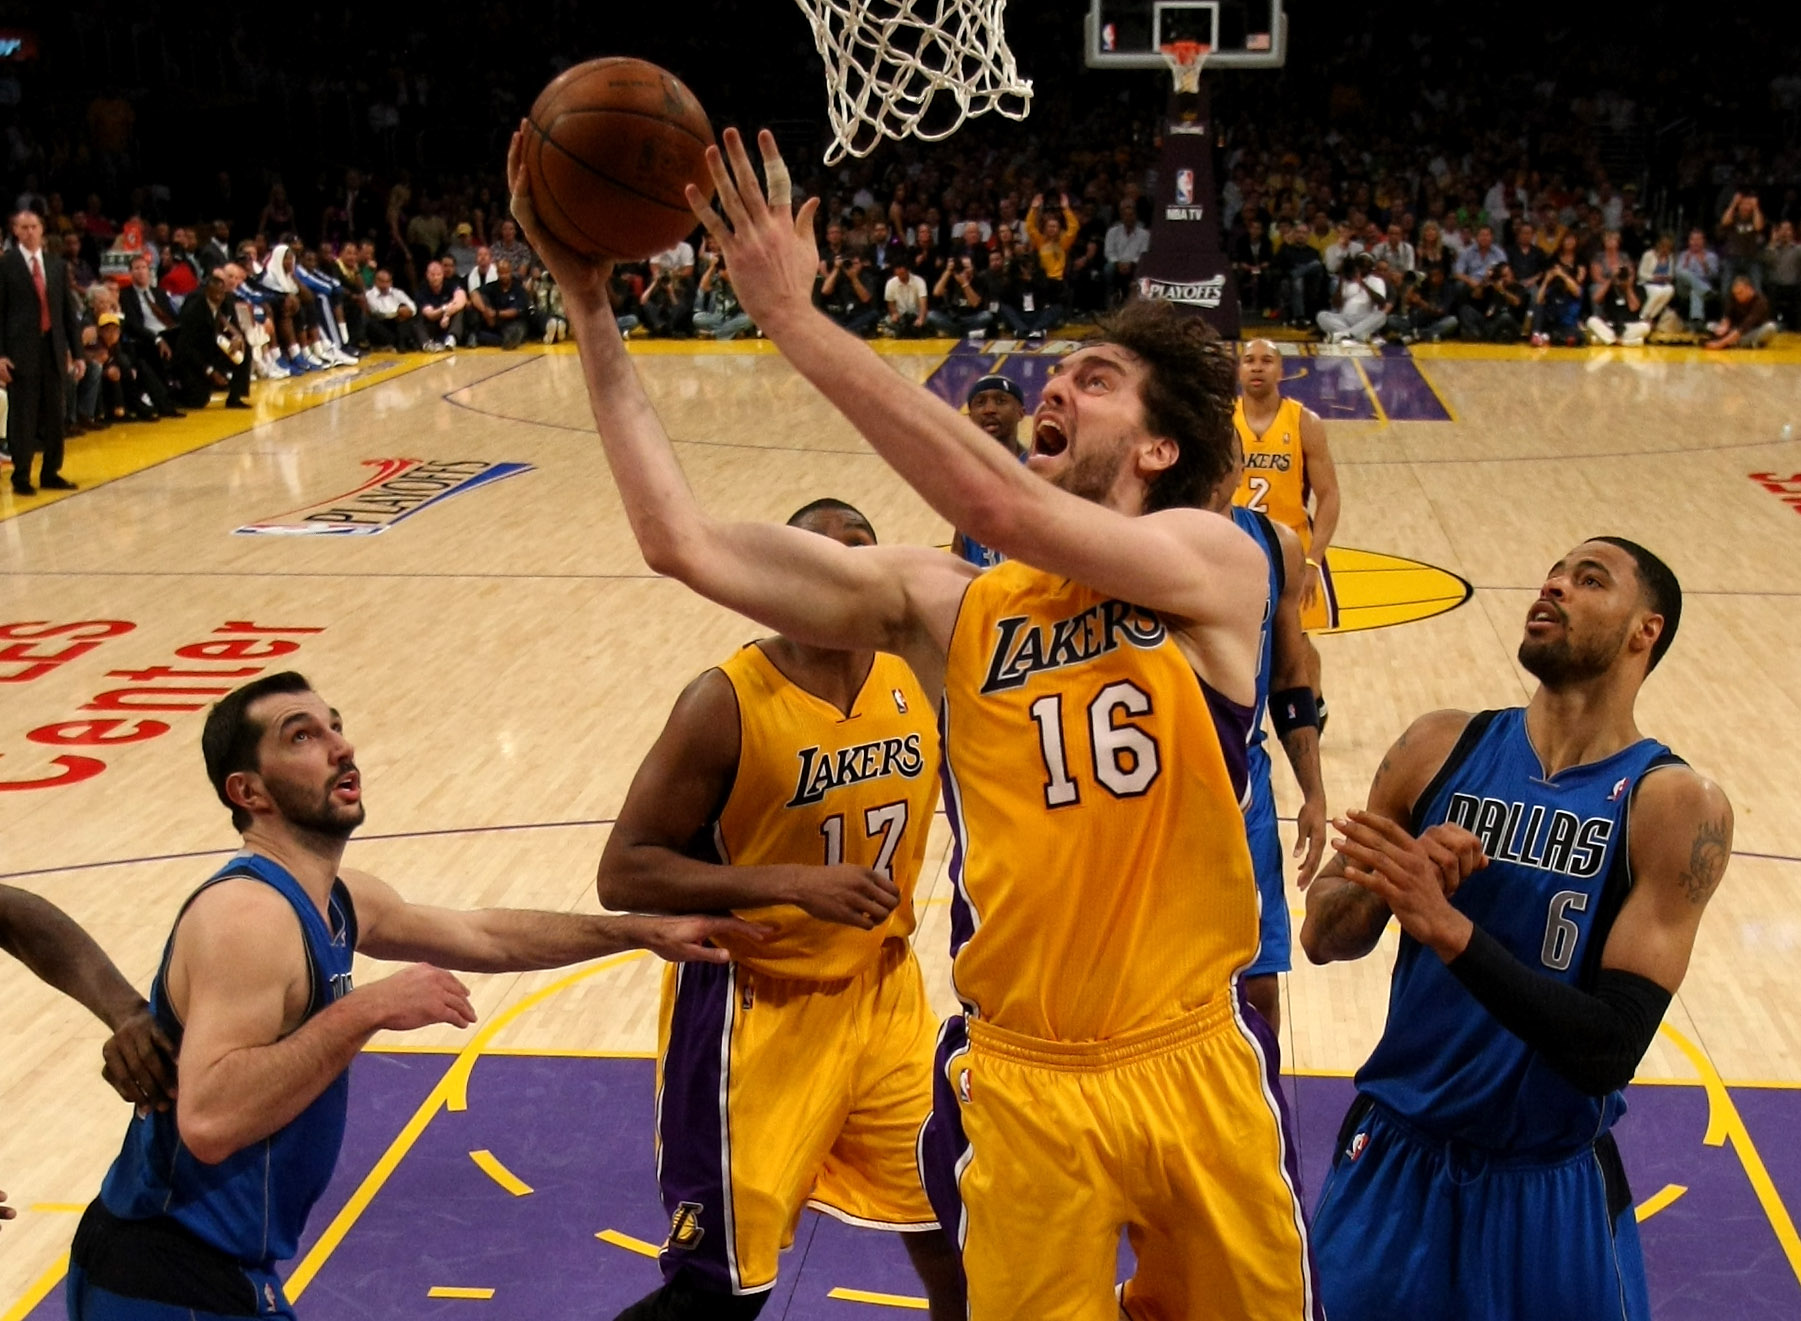 LOS ANGELES, CA - MAY 04:  Pau Gasol #16 of the Los Angeles Lakers goes up for a shot between Peja Stojakovic #16 and Tyson Chandler #6 of the Dallas Mavericks in Game Two of the Western Conference Semifinals in the 2011 NBA Playoffs at Staples Center on